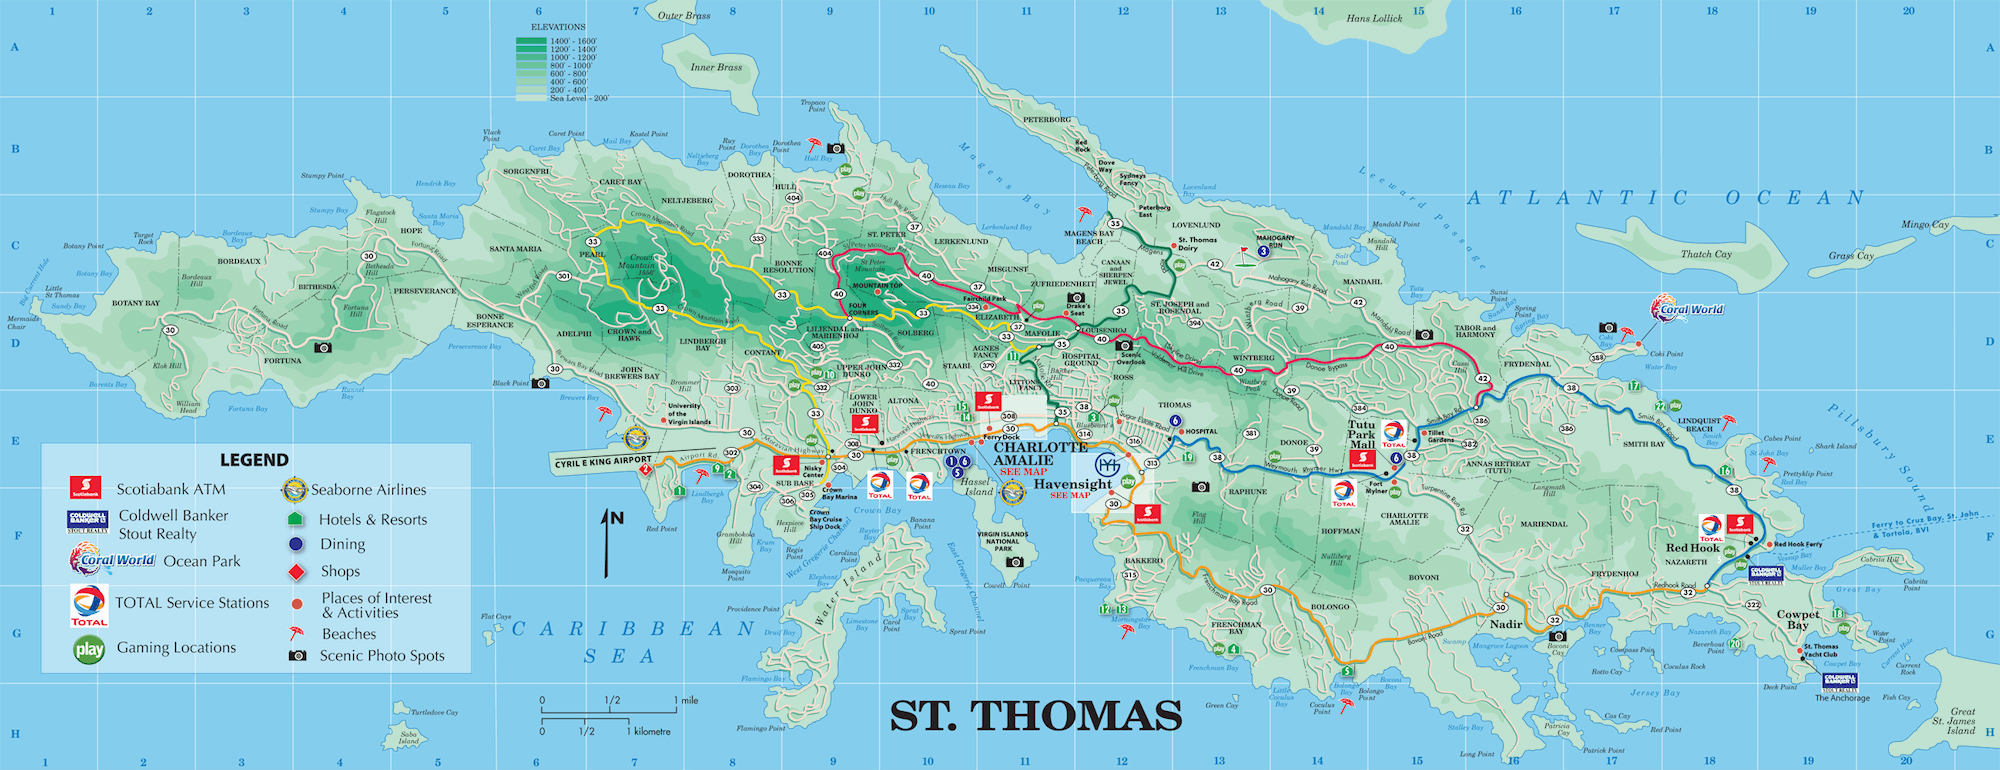 US Virgin Islands Maps Maps Of United States Virgin Islands - Us virgin islands google maps